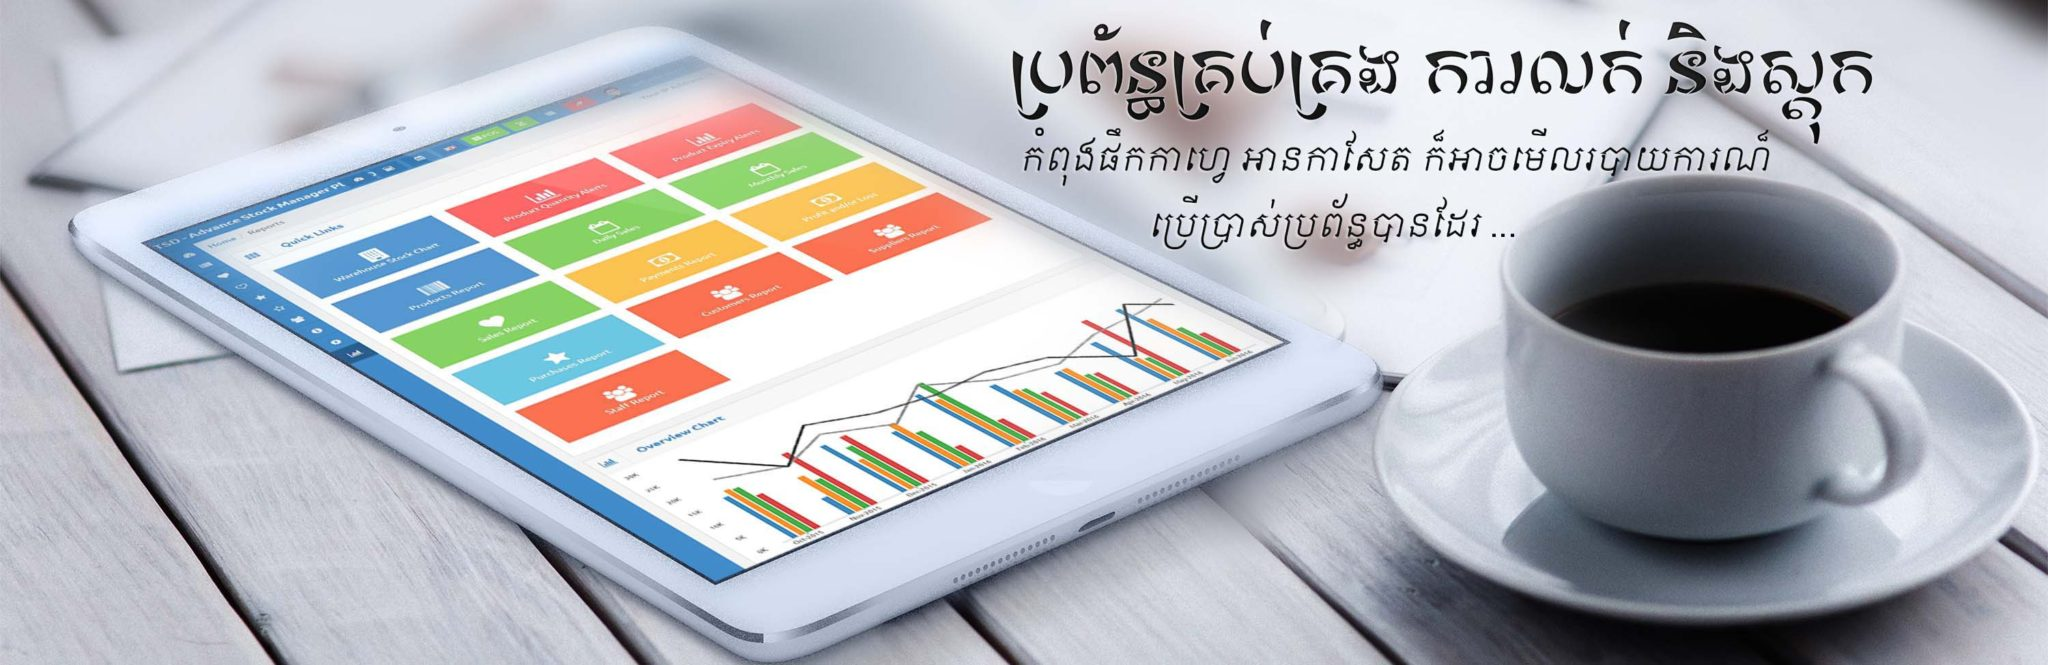 Best POS System in Cambodia